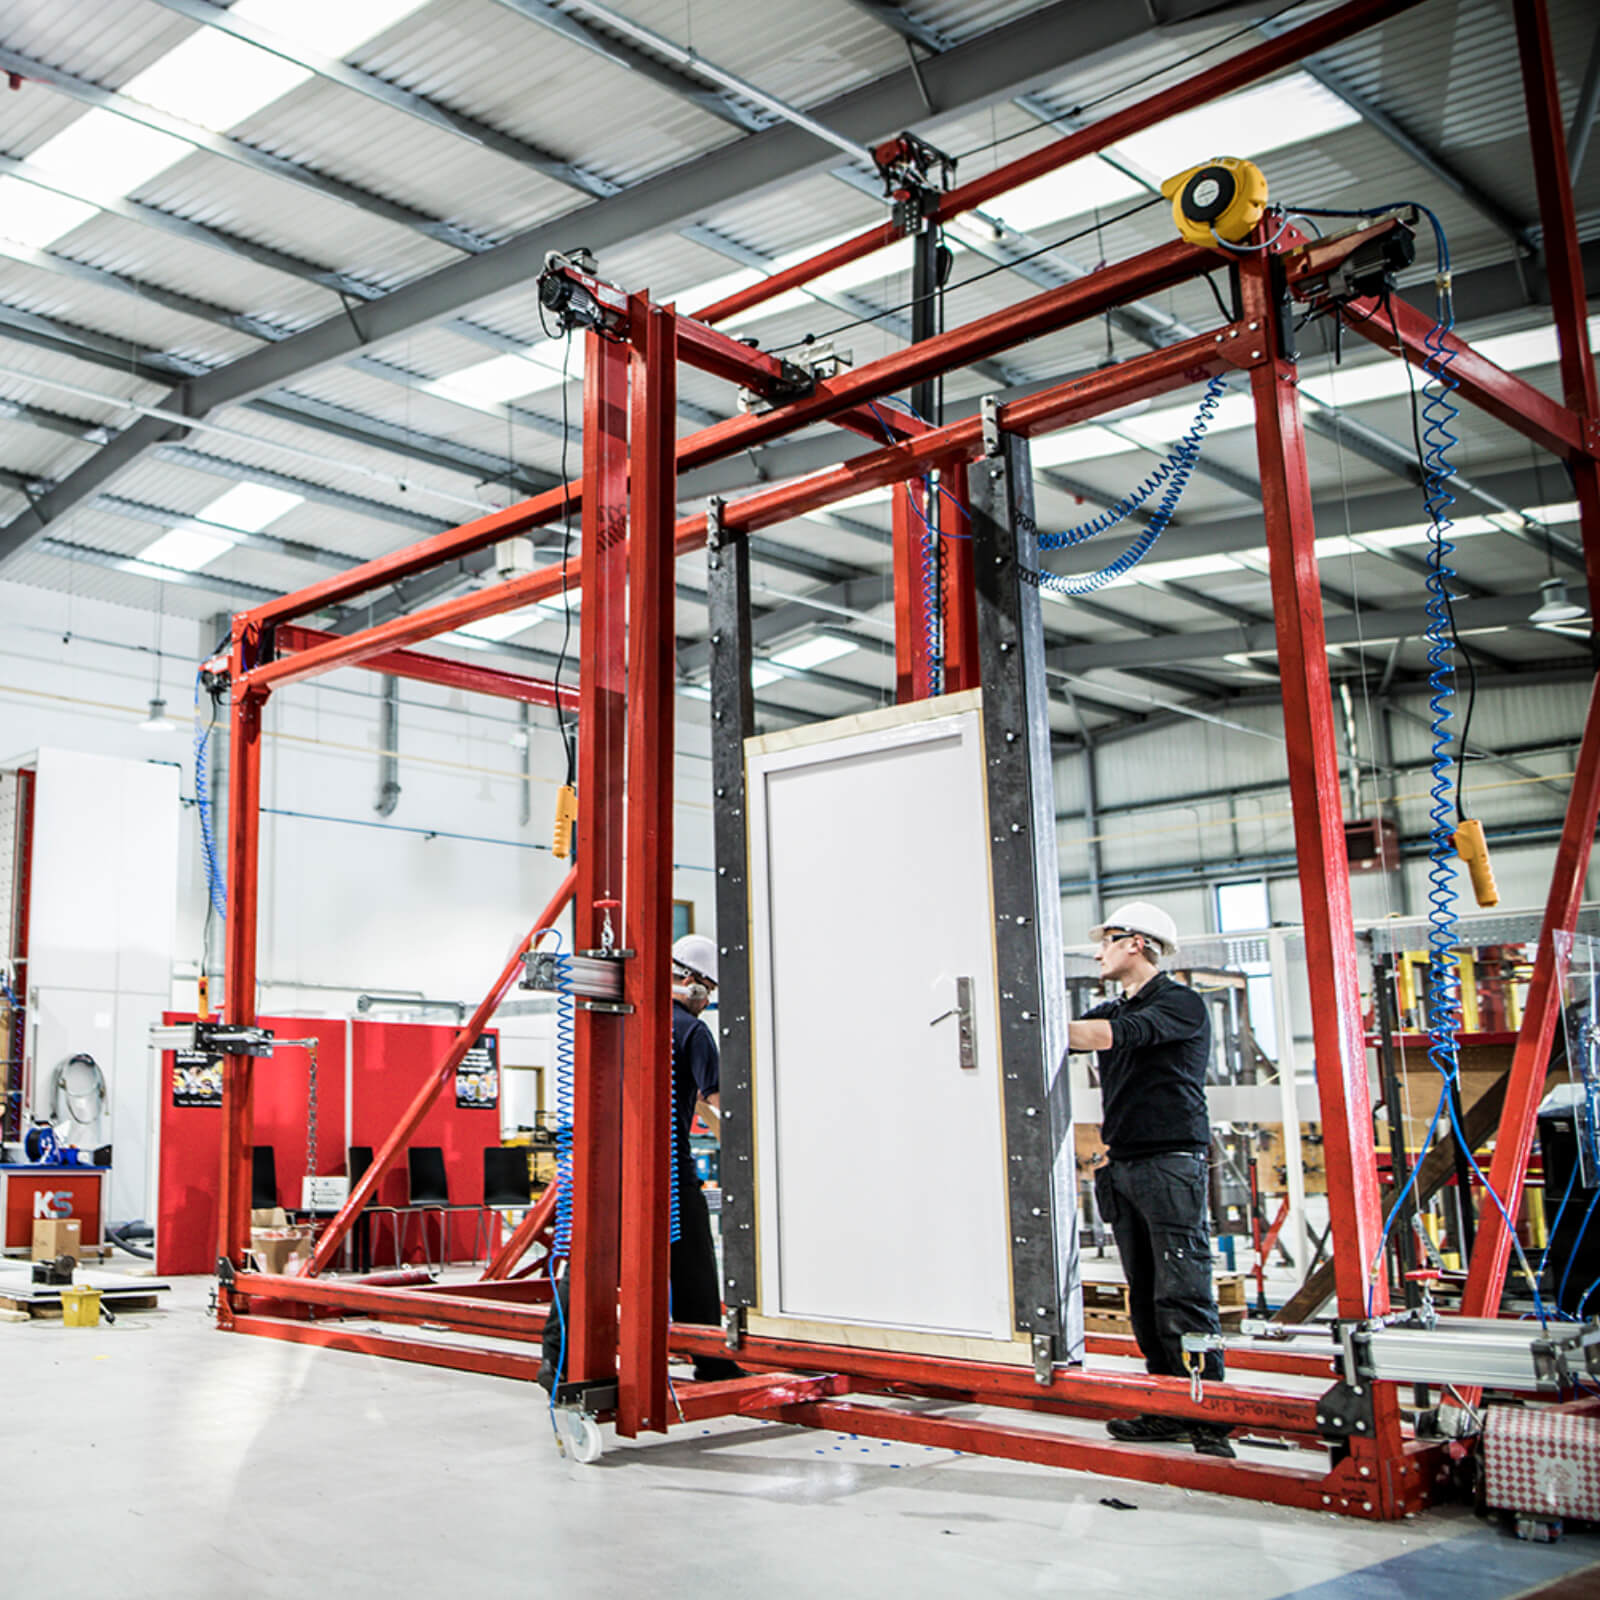 door being certified in a testing facility